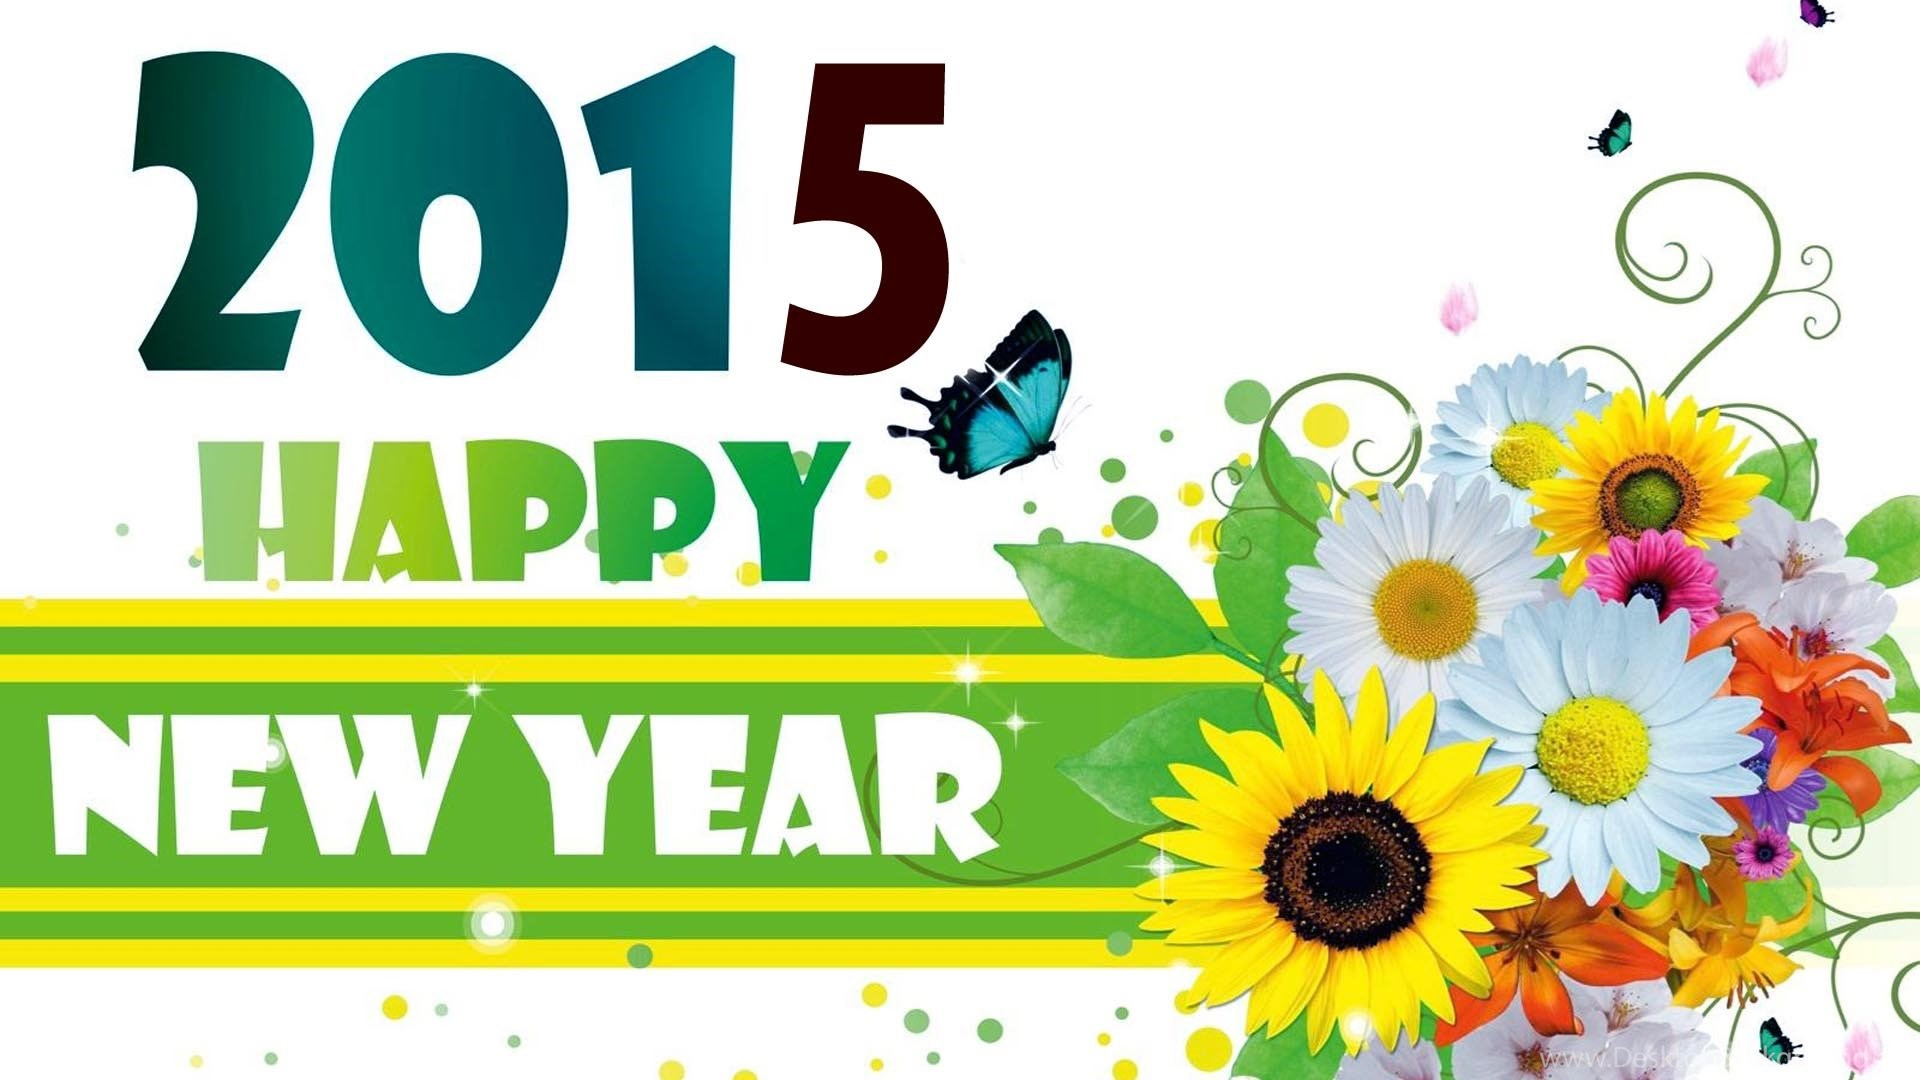 New Year Wishes 2015 Wallpapers Hd Wallpapers Cave Desktop Background